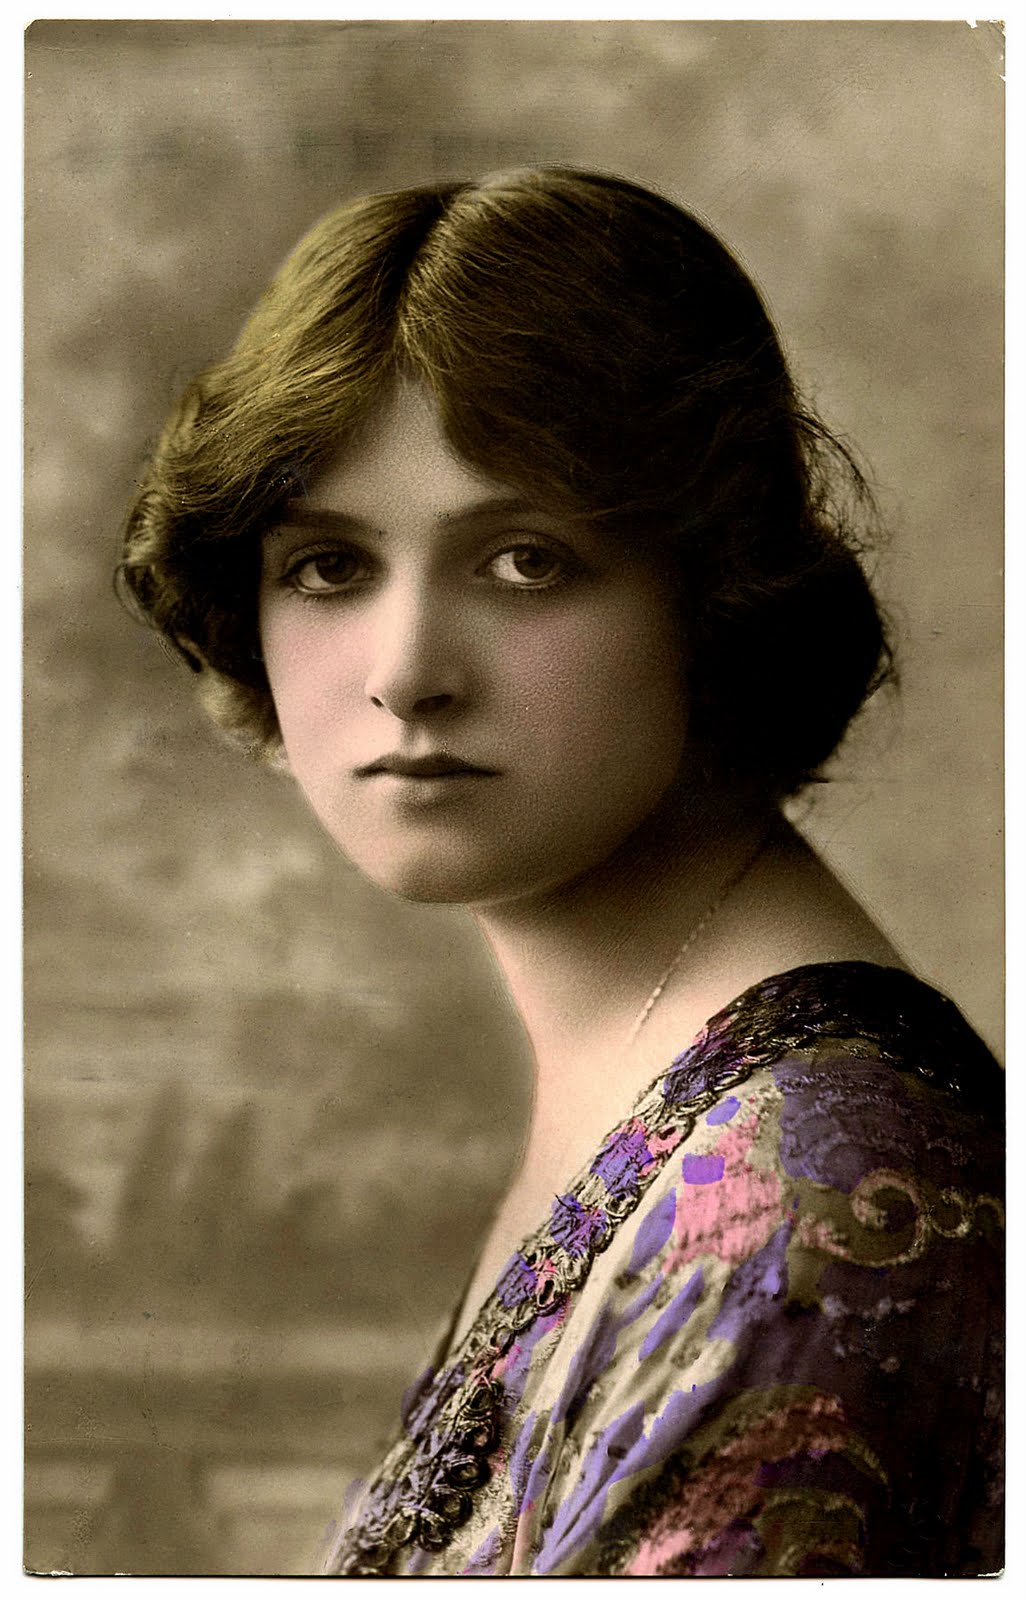 Communication on this topic: Neith Hunter, gladys-cooper/